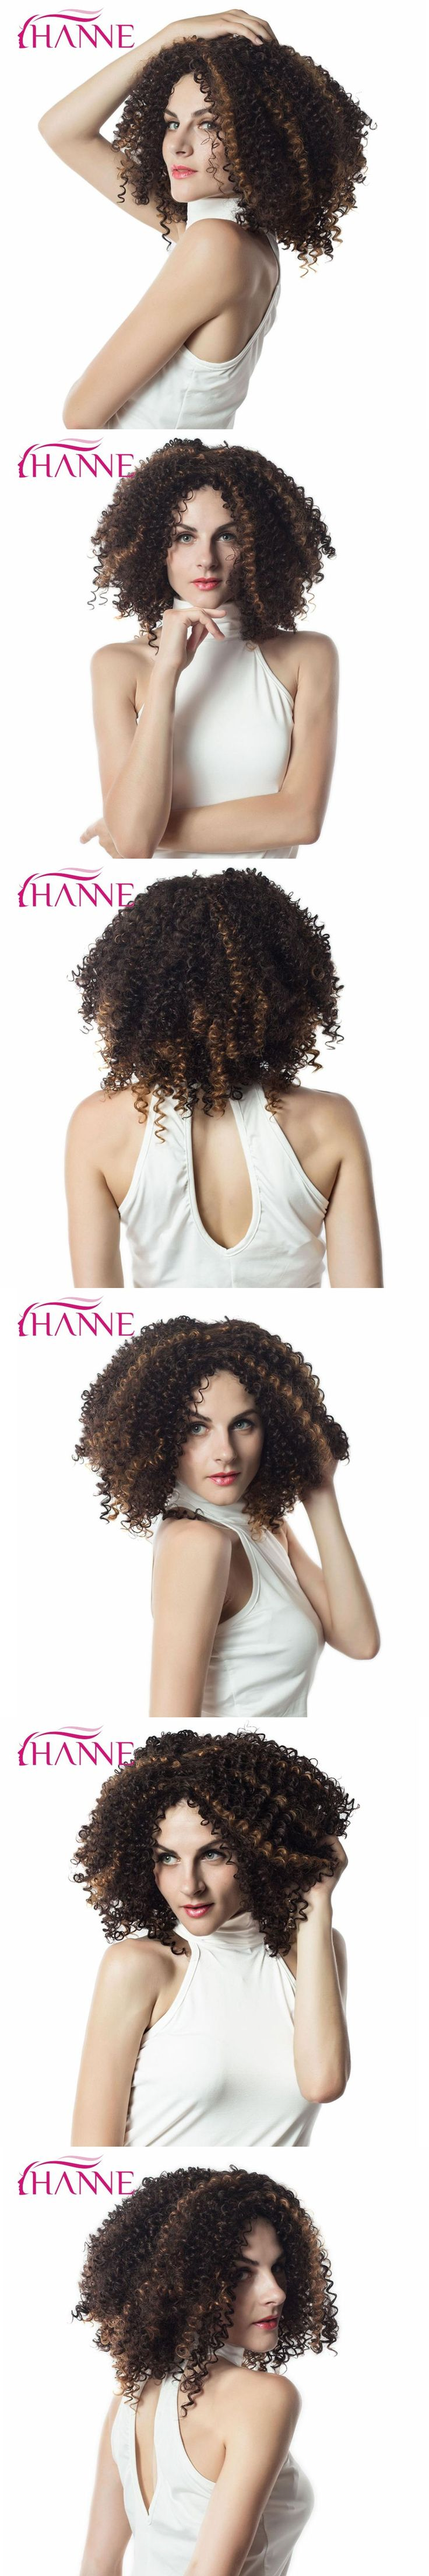 HANNE Medium Length Afro Kinky Curly Mixed Brown And Blonde Heat Resistant Synthetic Hair Wigs for Black Women African Fiber Wig